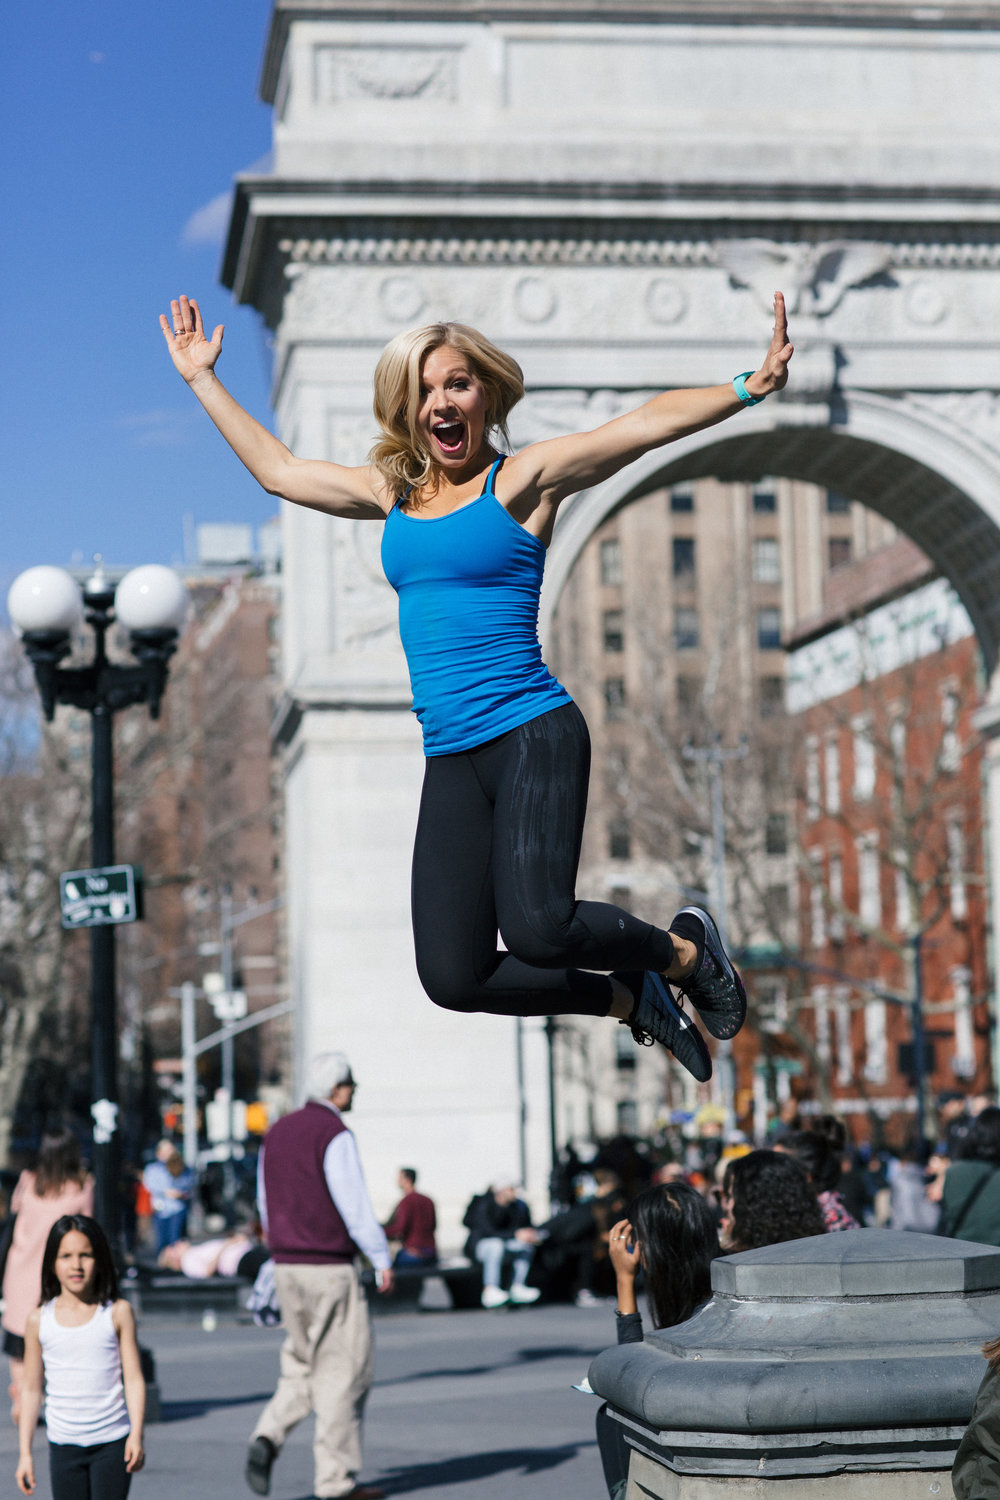 https://www.annakooiman.com/activewear/new-york-city-stunts-tanks-and-tights